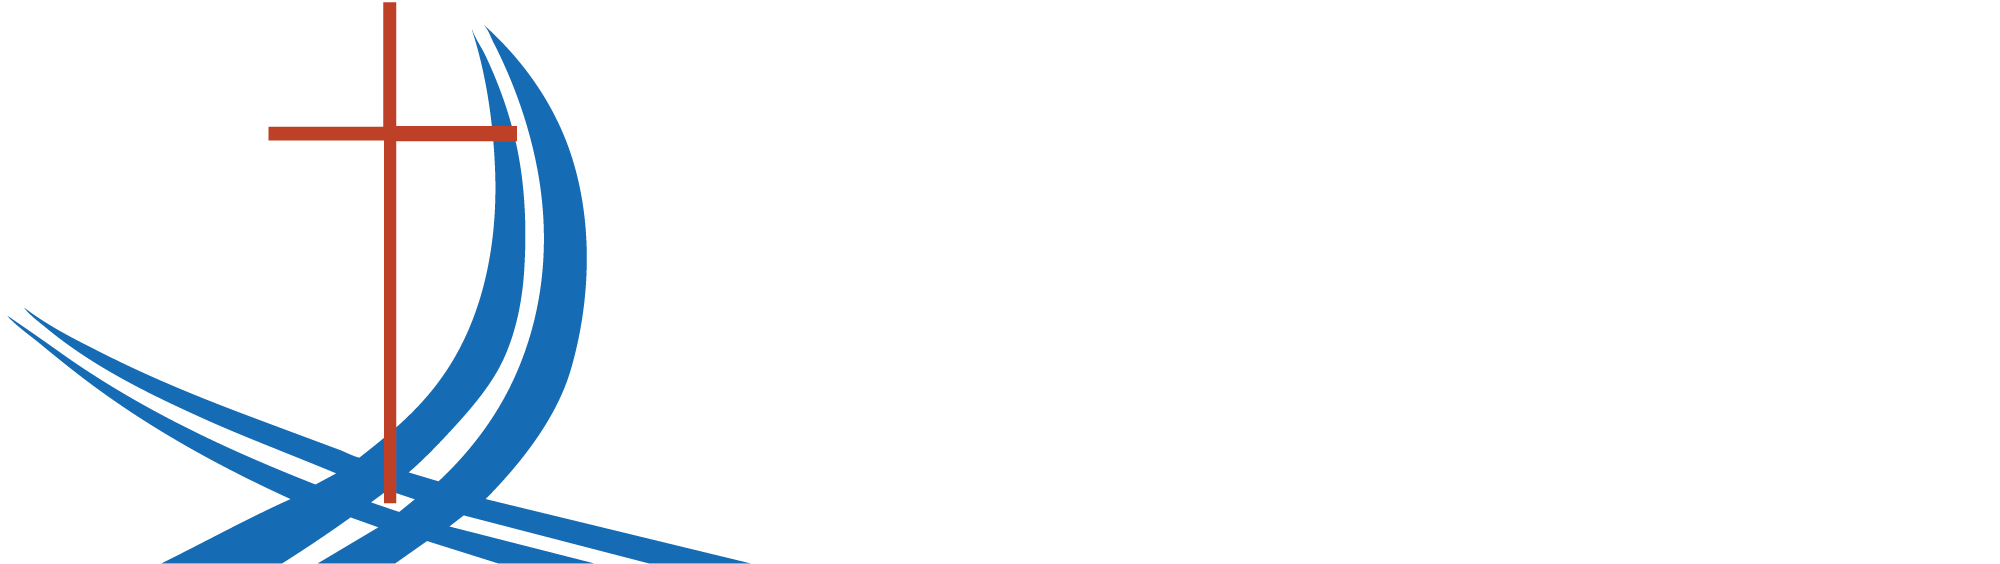 First Baptist Church Posey Crossroads – Prattville, AL